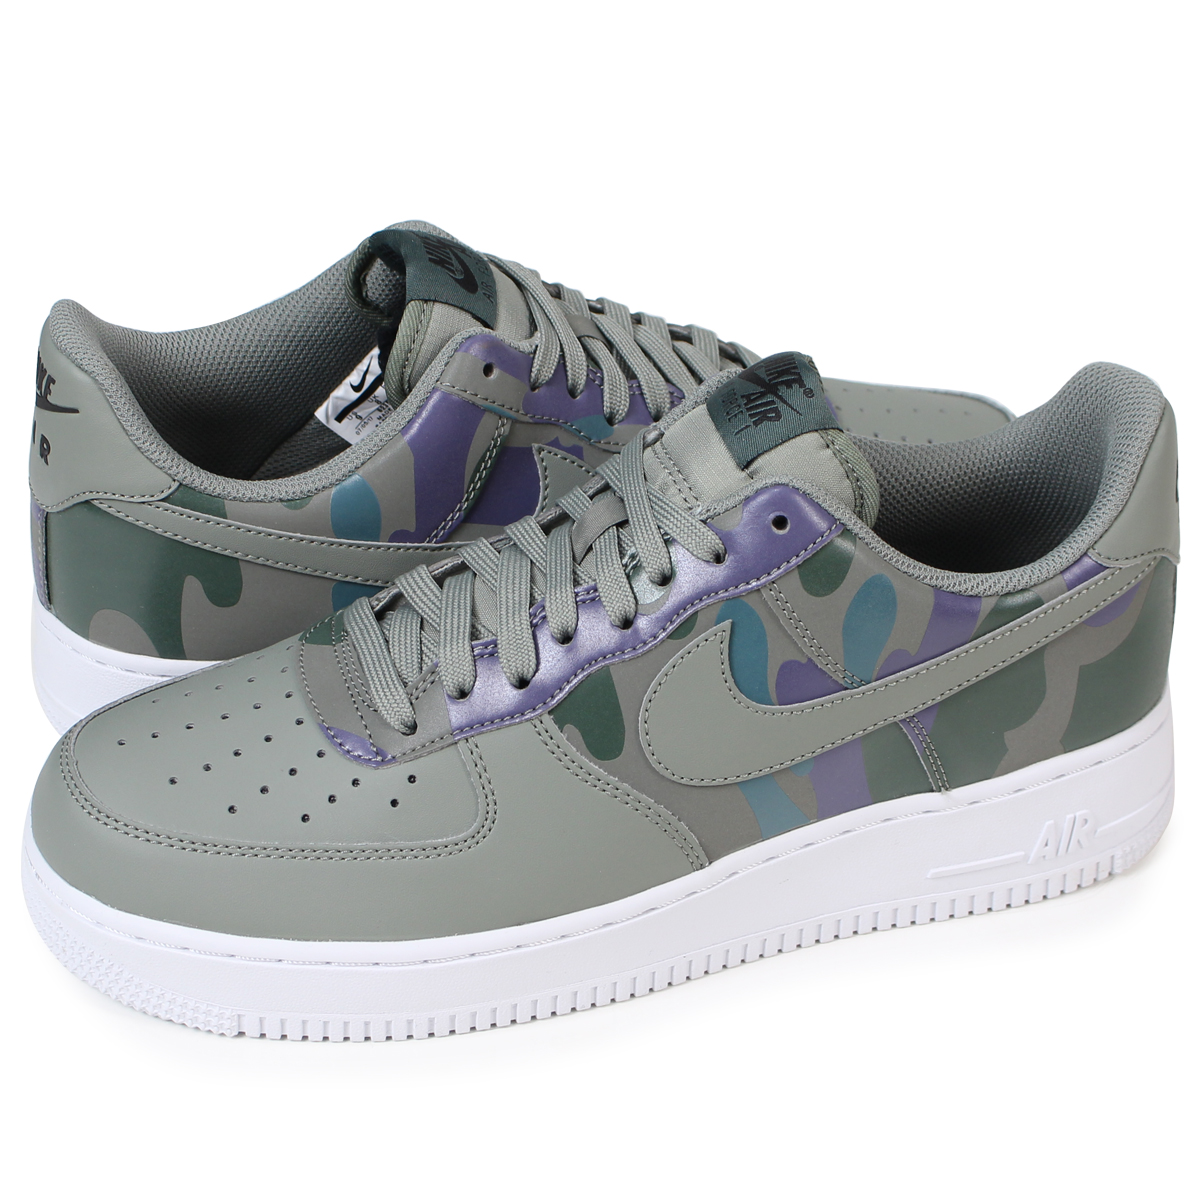 NIKE AIR FORCE 1 07 LV8 CAMO PACK Nike air force 1 men's sneakers 823,511 008 shoes green [127 Shinnyu load] [1711]